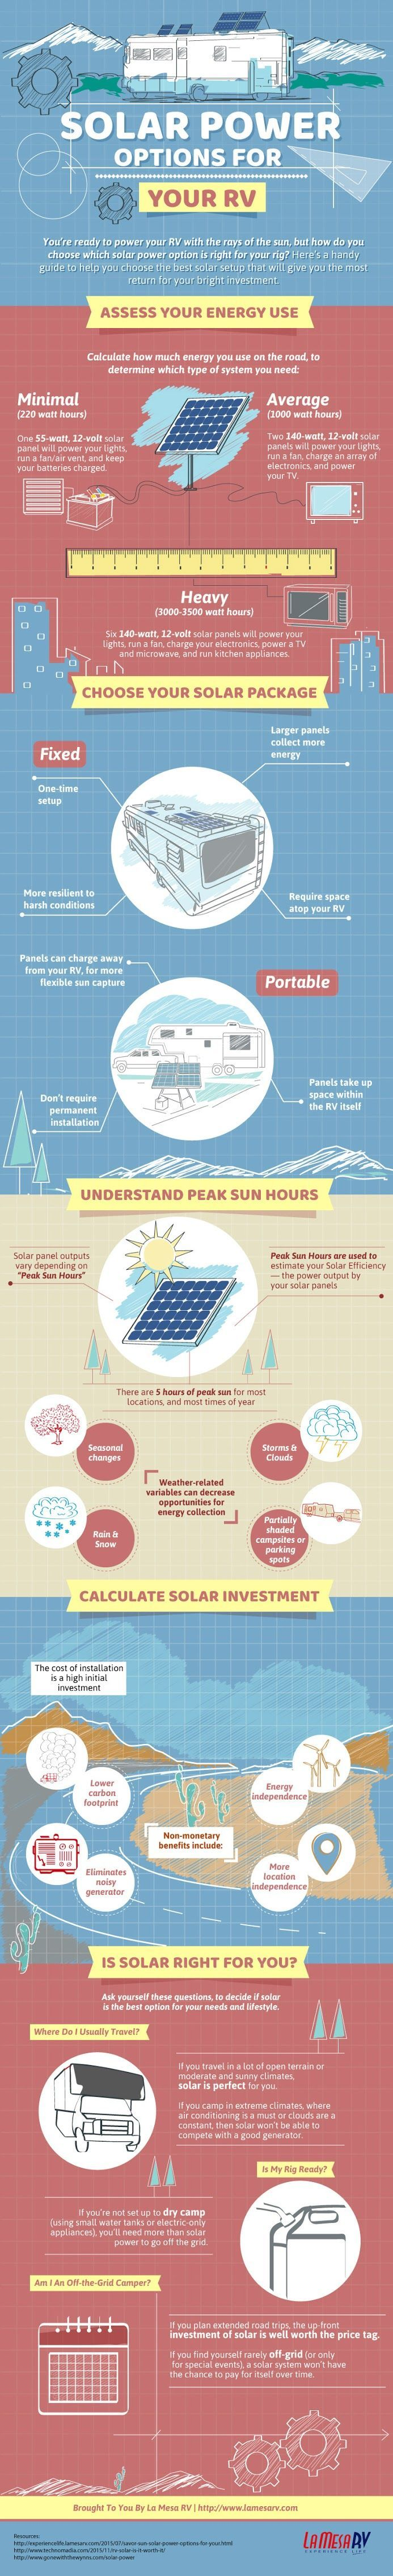 Powerful Great tips for Using Solar Power For Your RVThe real   The reality of solar is that many RVers have yet to take advantage of the real benefitscosts and cost savings associated with going solar and some may still want to take time to assess if investing in solar makes sense.